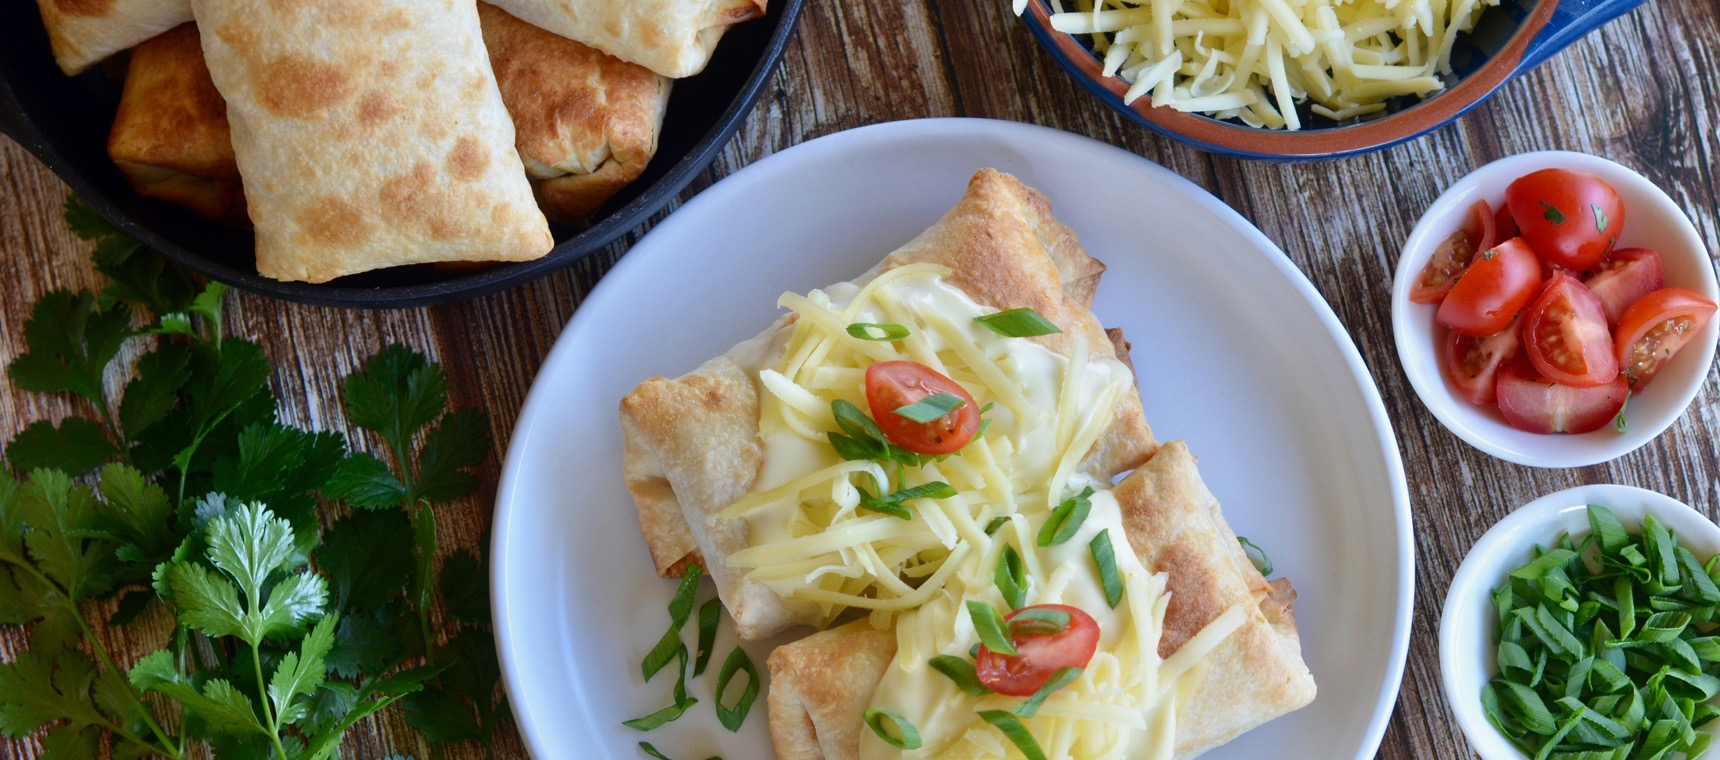 Spicy Chicken Chimichangas